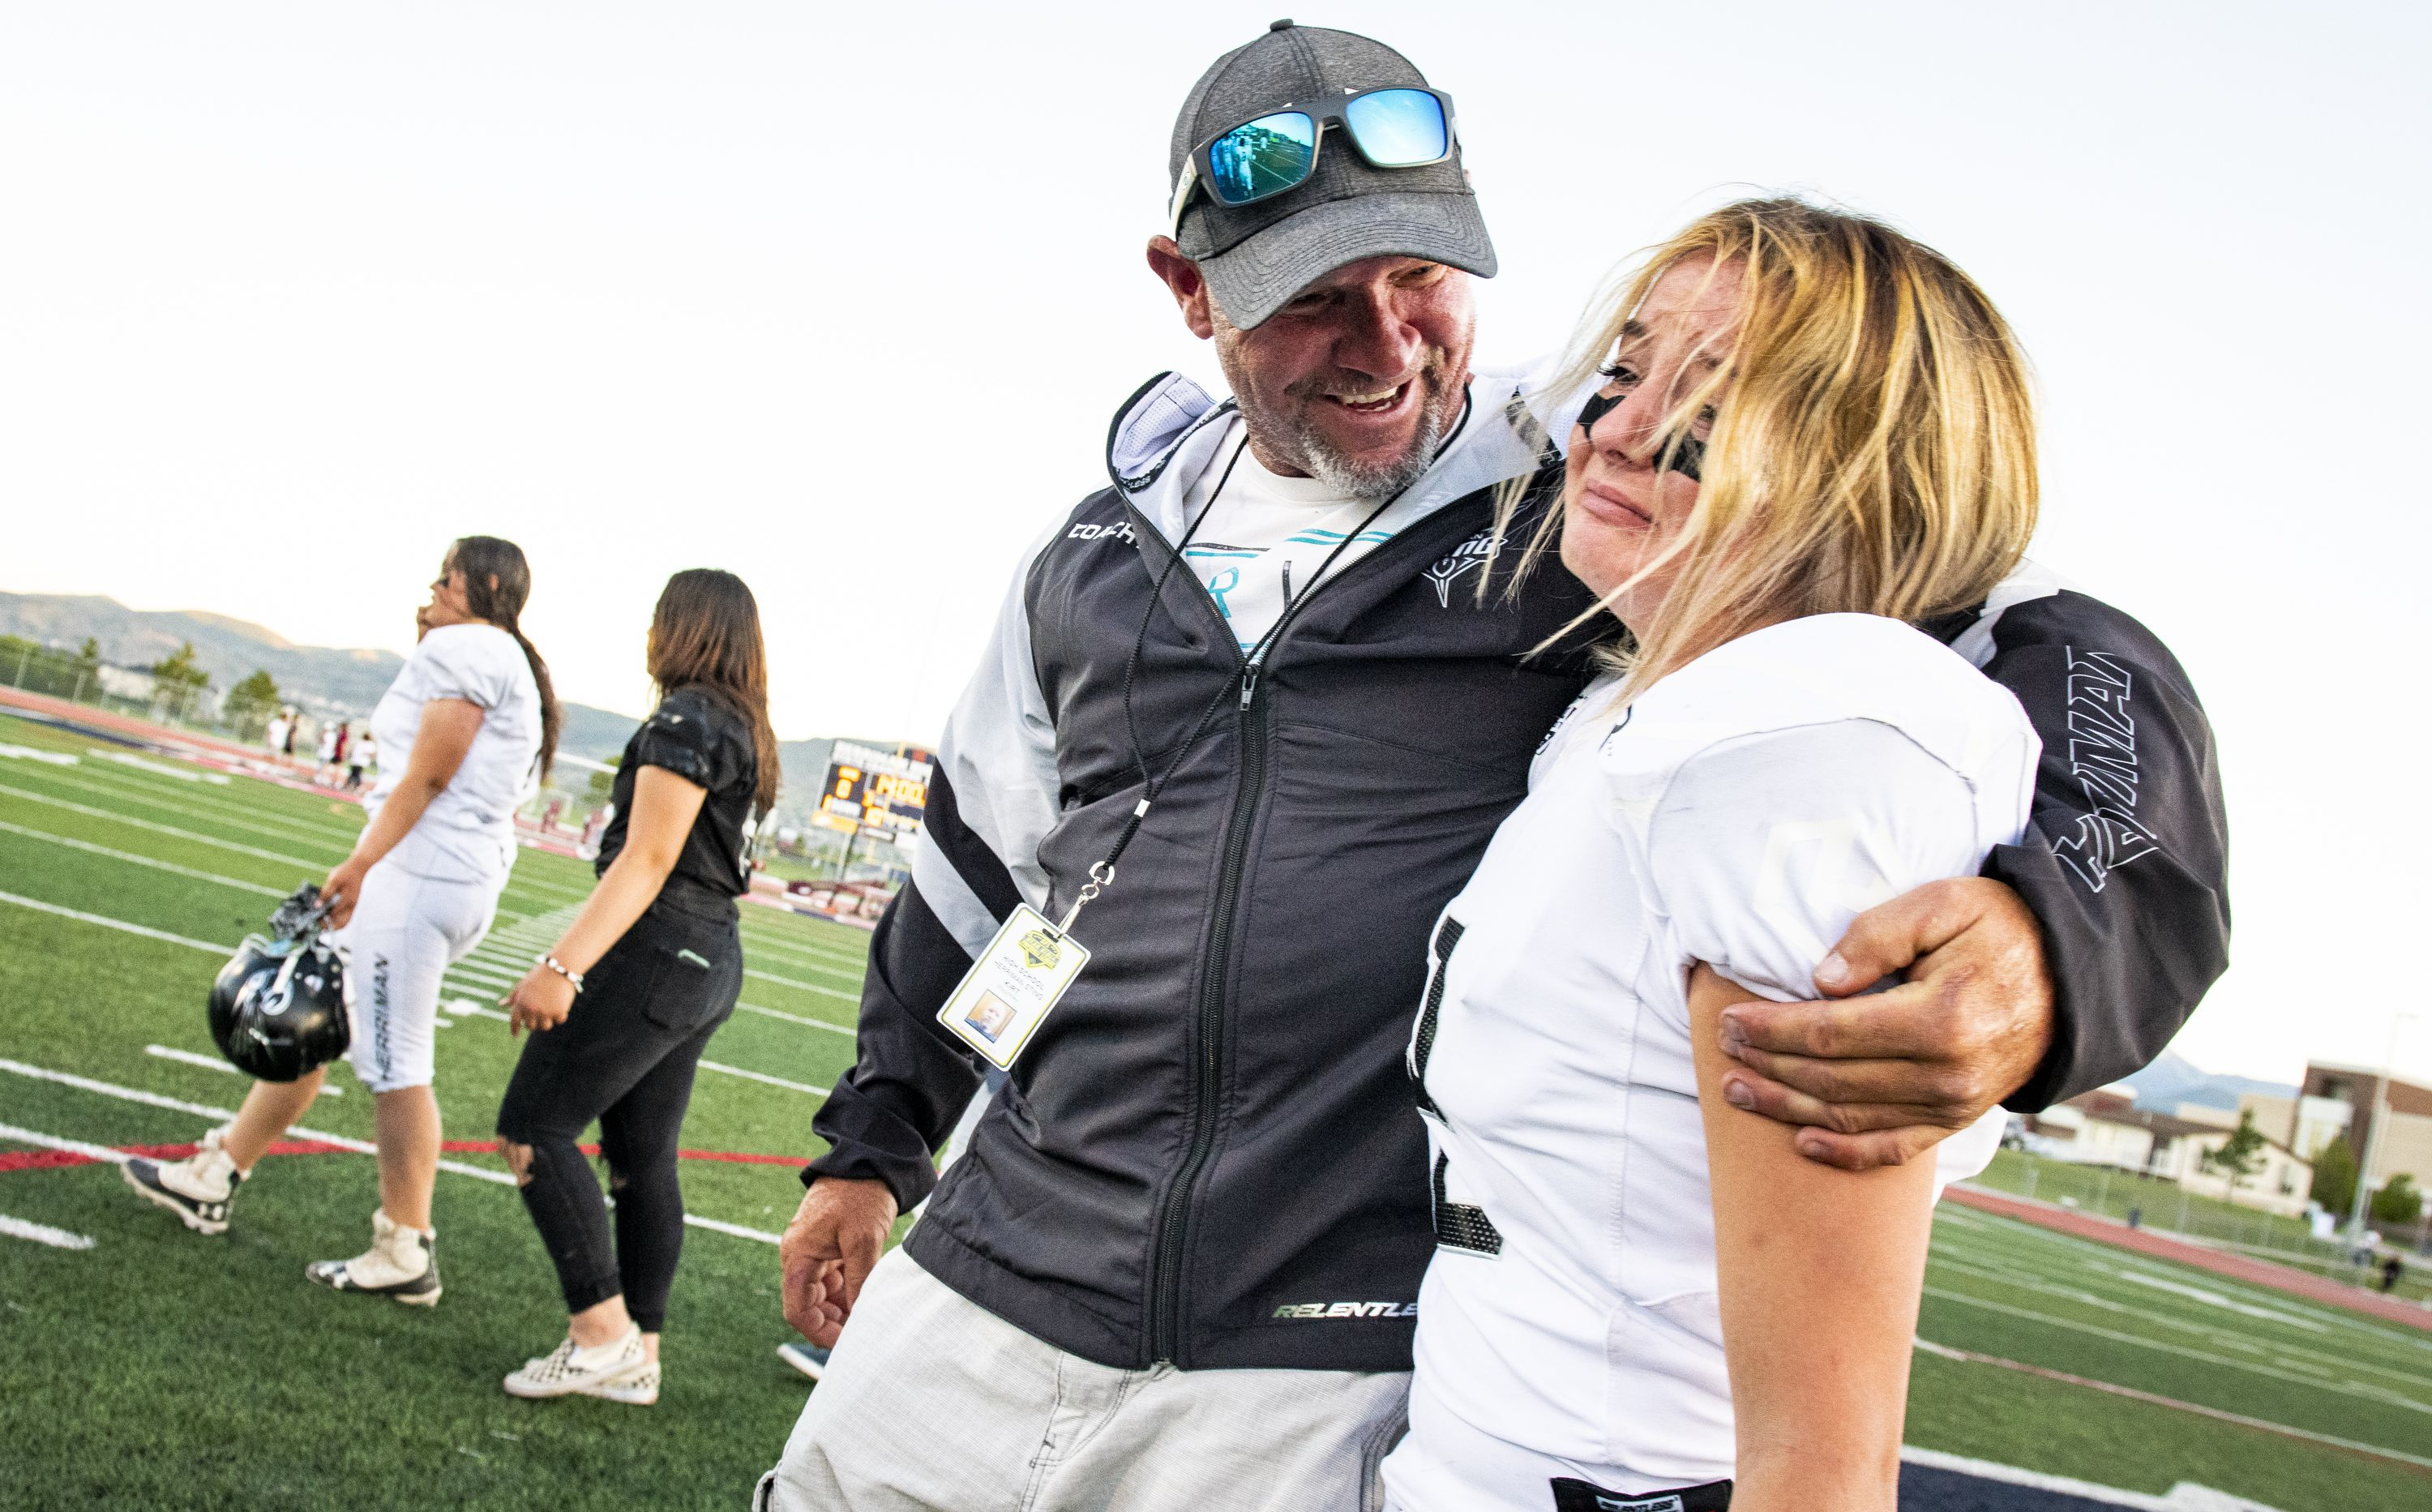 (Isaac Hale   Special to The Tribune) Herriman's Sydni Ohmie (2) is consoled after the Herriman Sting was defeated by the Kearns Cougars during the second game of the Utah Girls Tackle Football League Championships held at Herriman High School on Thursday, May 27, 2021.